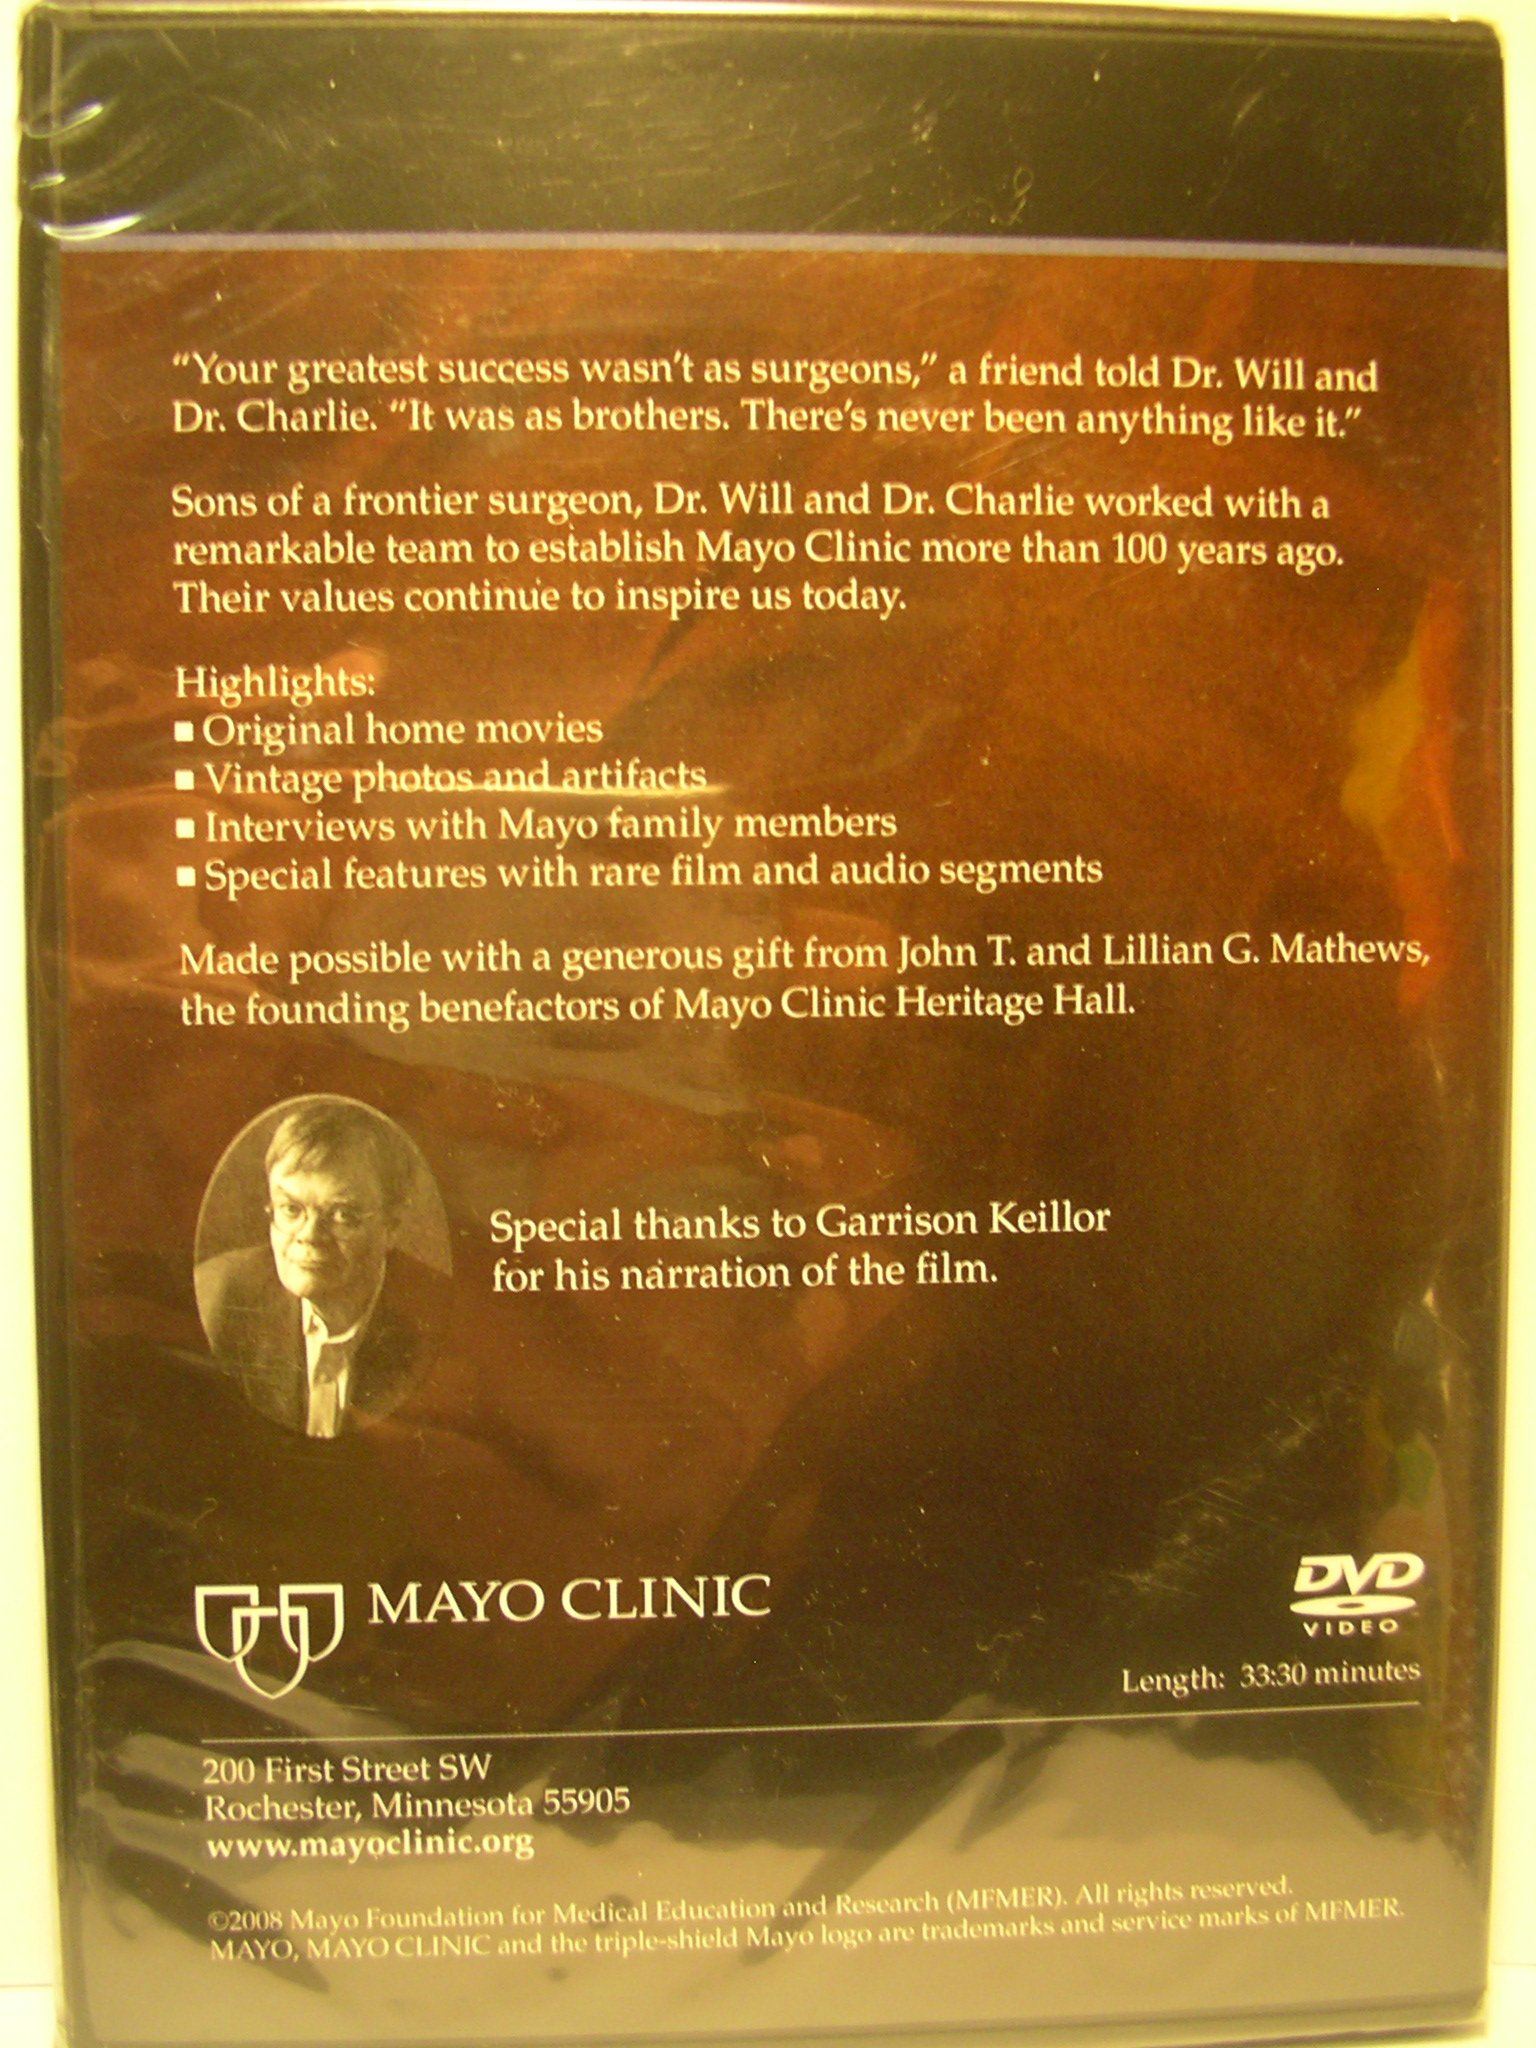 My Brother and I (DVD) (Mayo Clinic Heritage Films): Amazon com: Books